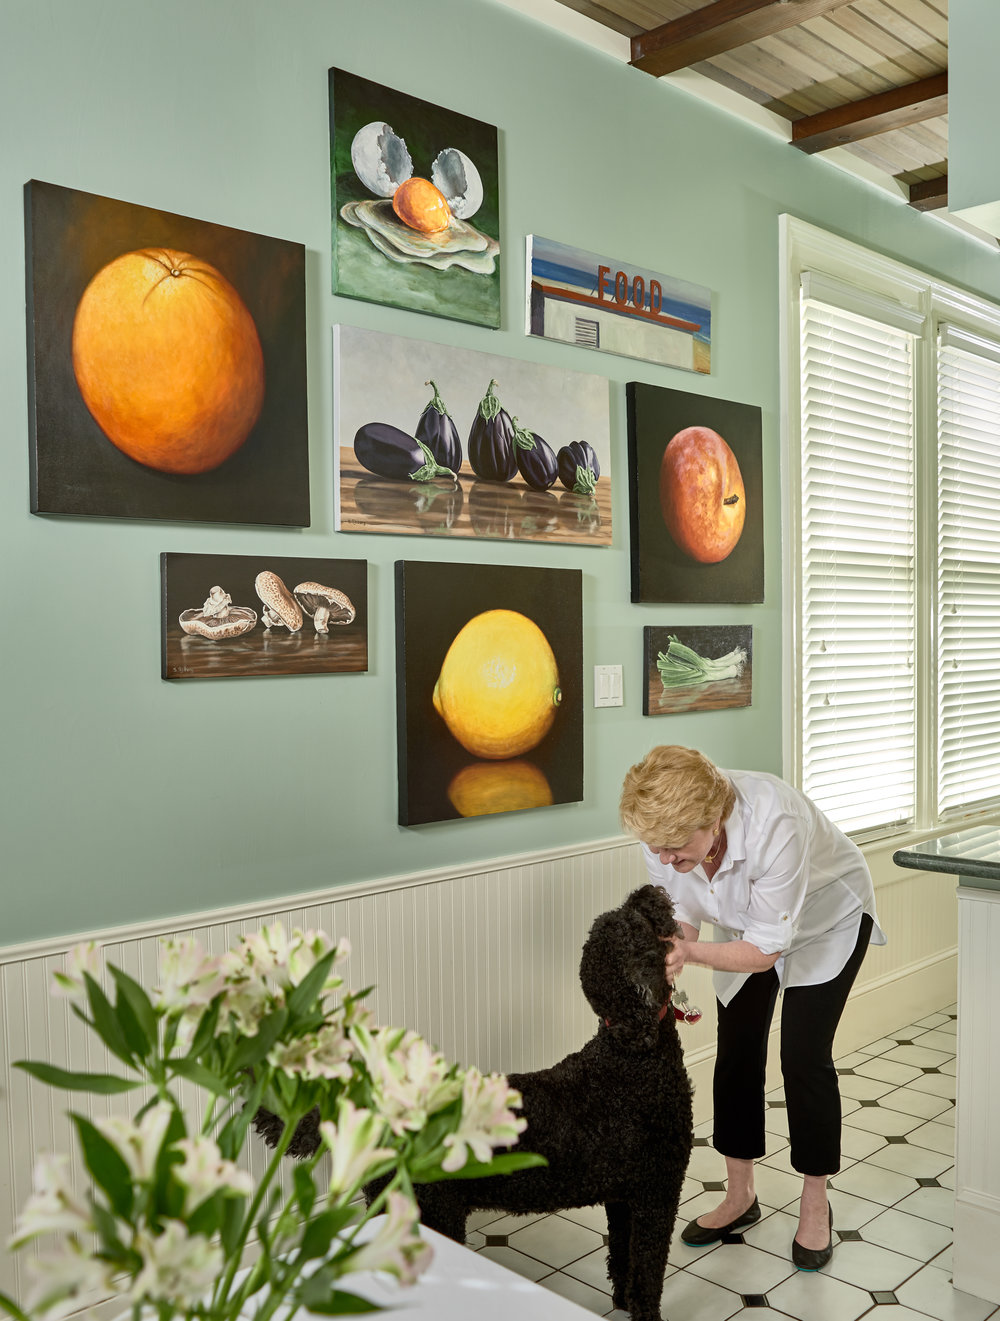 C.H. and her dog in front of a culinary-themed gallery wall including artwork by UGallery artists Kristine Kainer, Susan Sjoberg, Tami Cardnella, and John Kilduff.